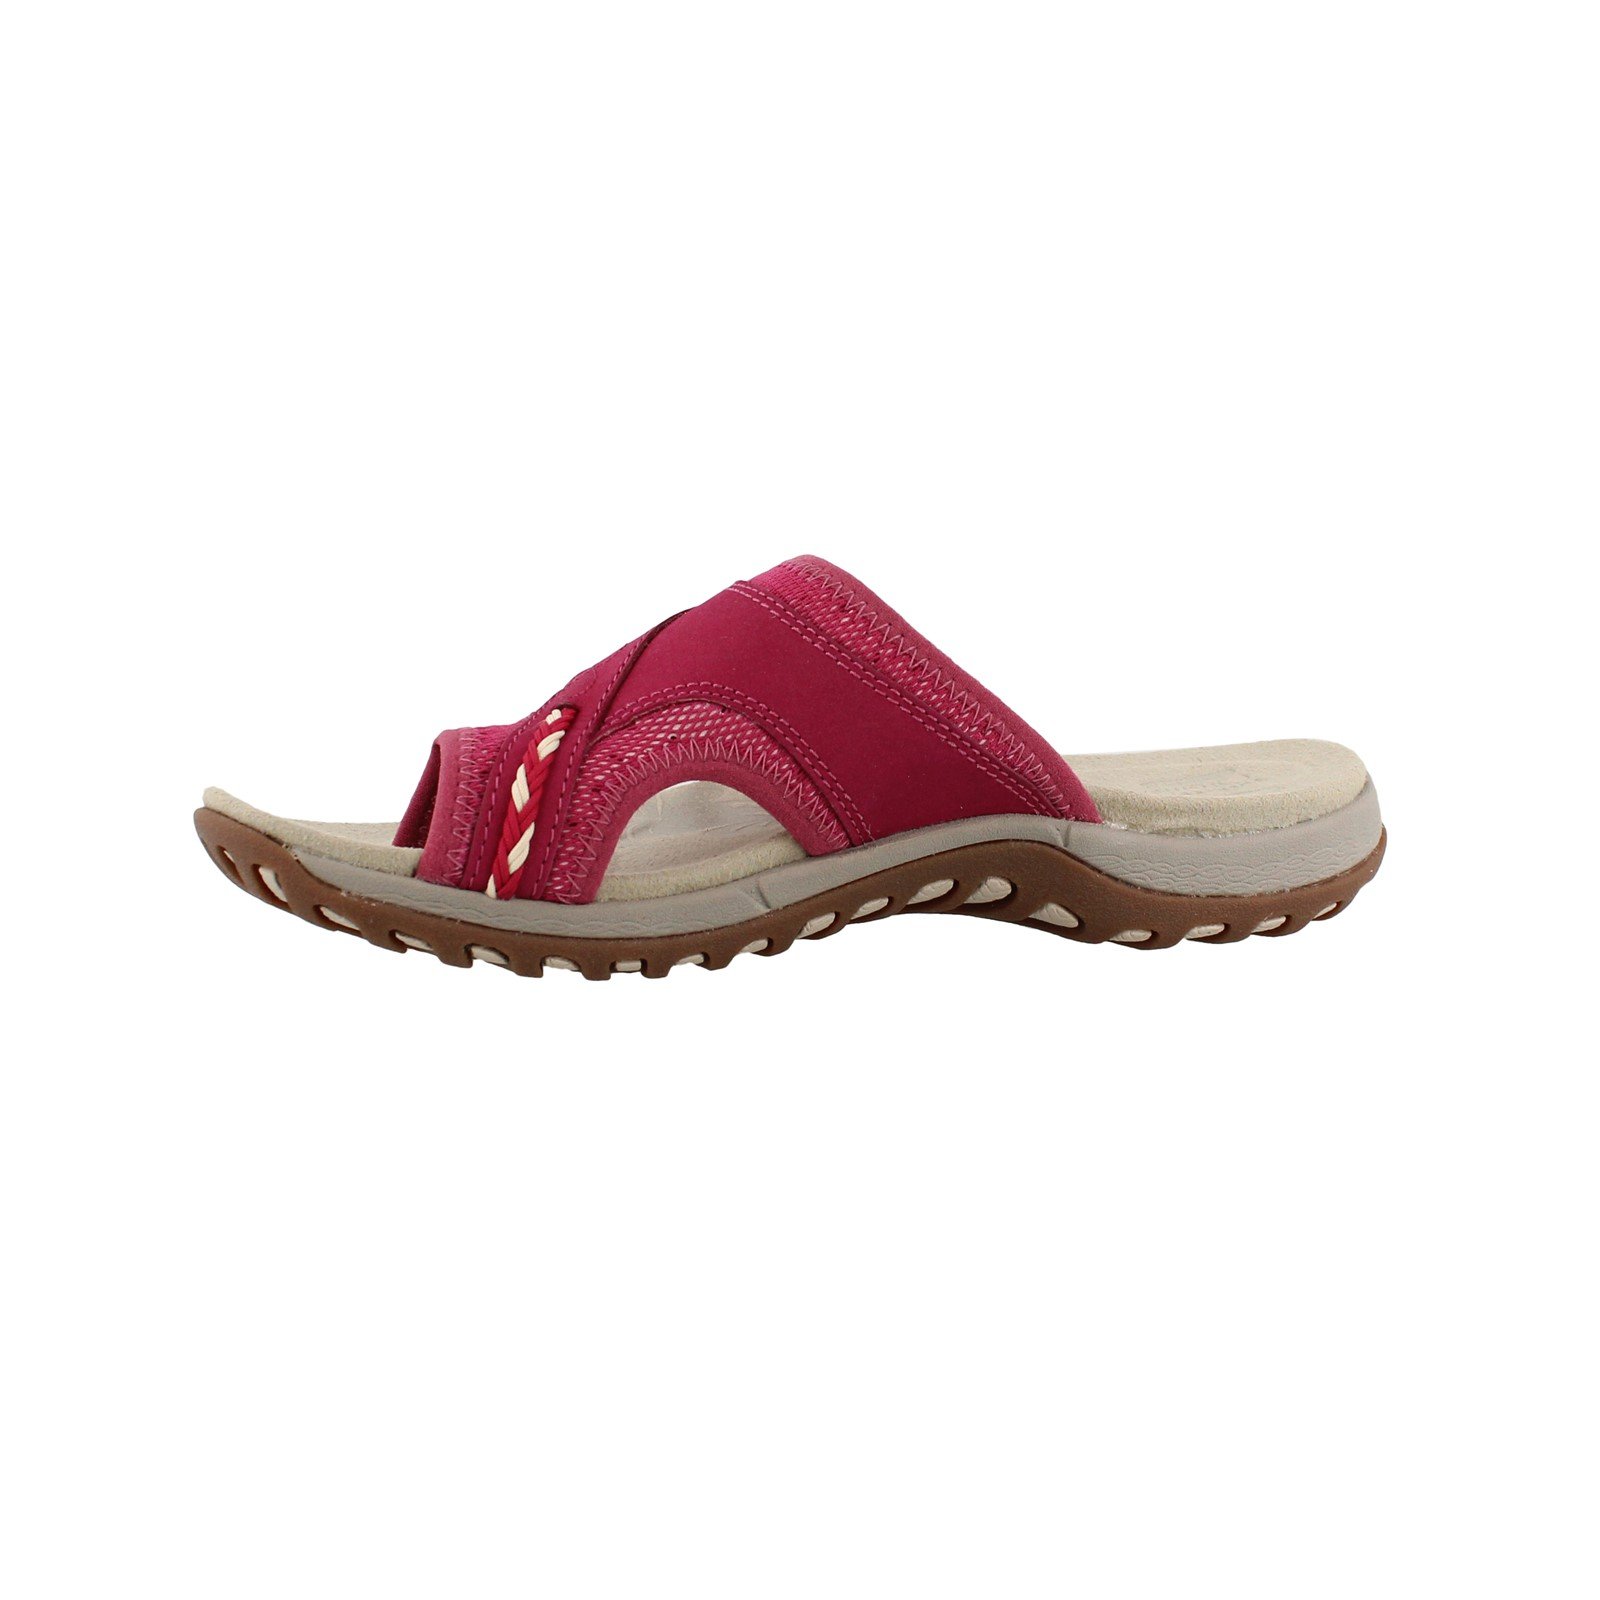 94a1b3b43e70 Next. add to favorites. Women s Merrell